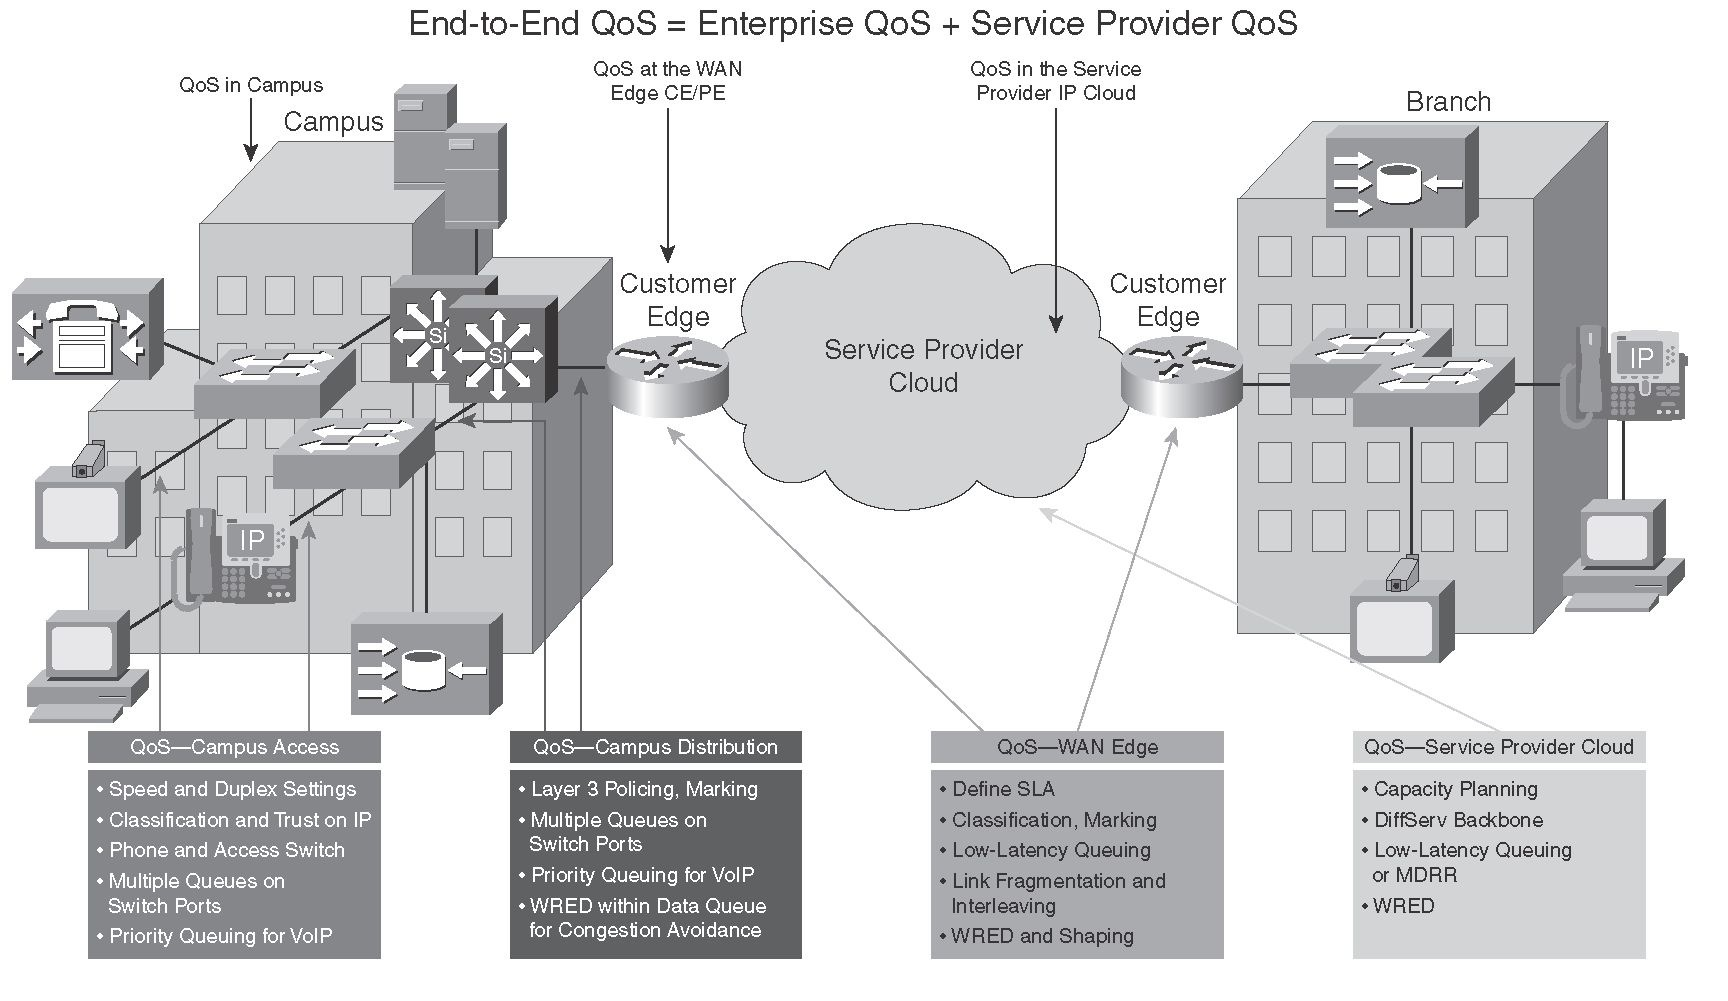 Deploying End-to-End QoS Part 1